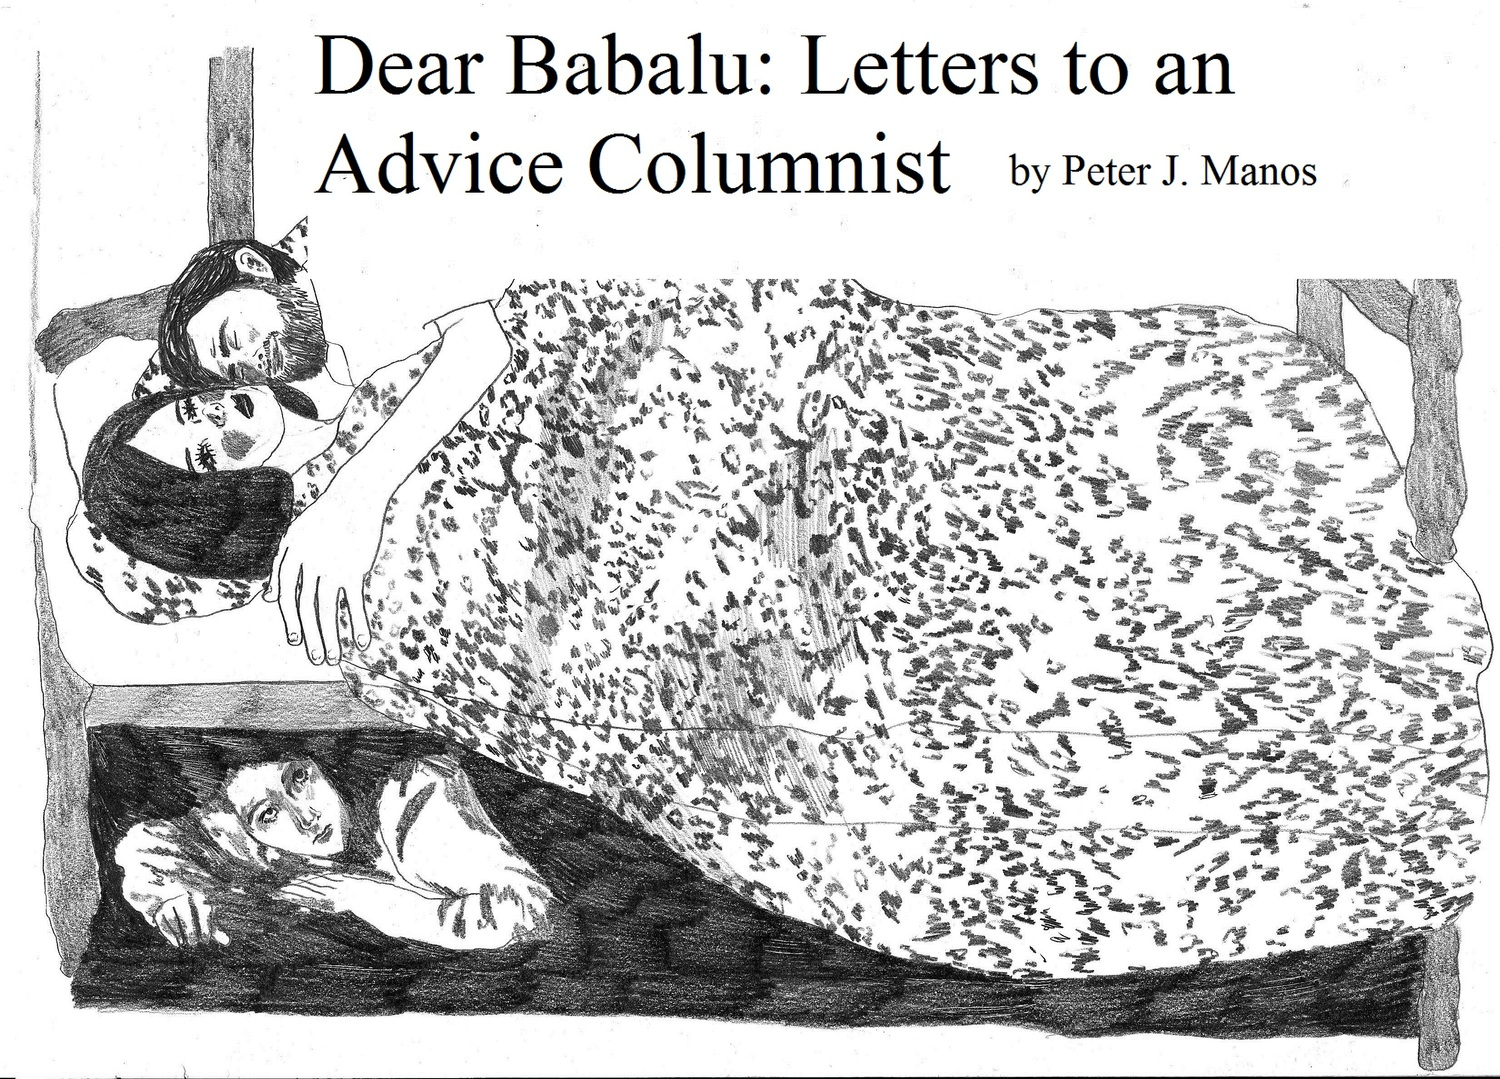 Dear Babalu: Letters to an Advice Columnist - Peter J. Manos